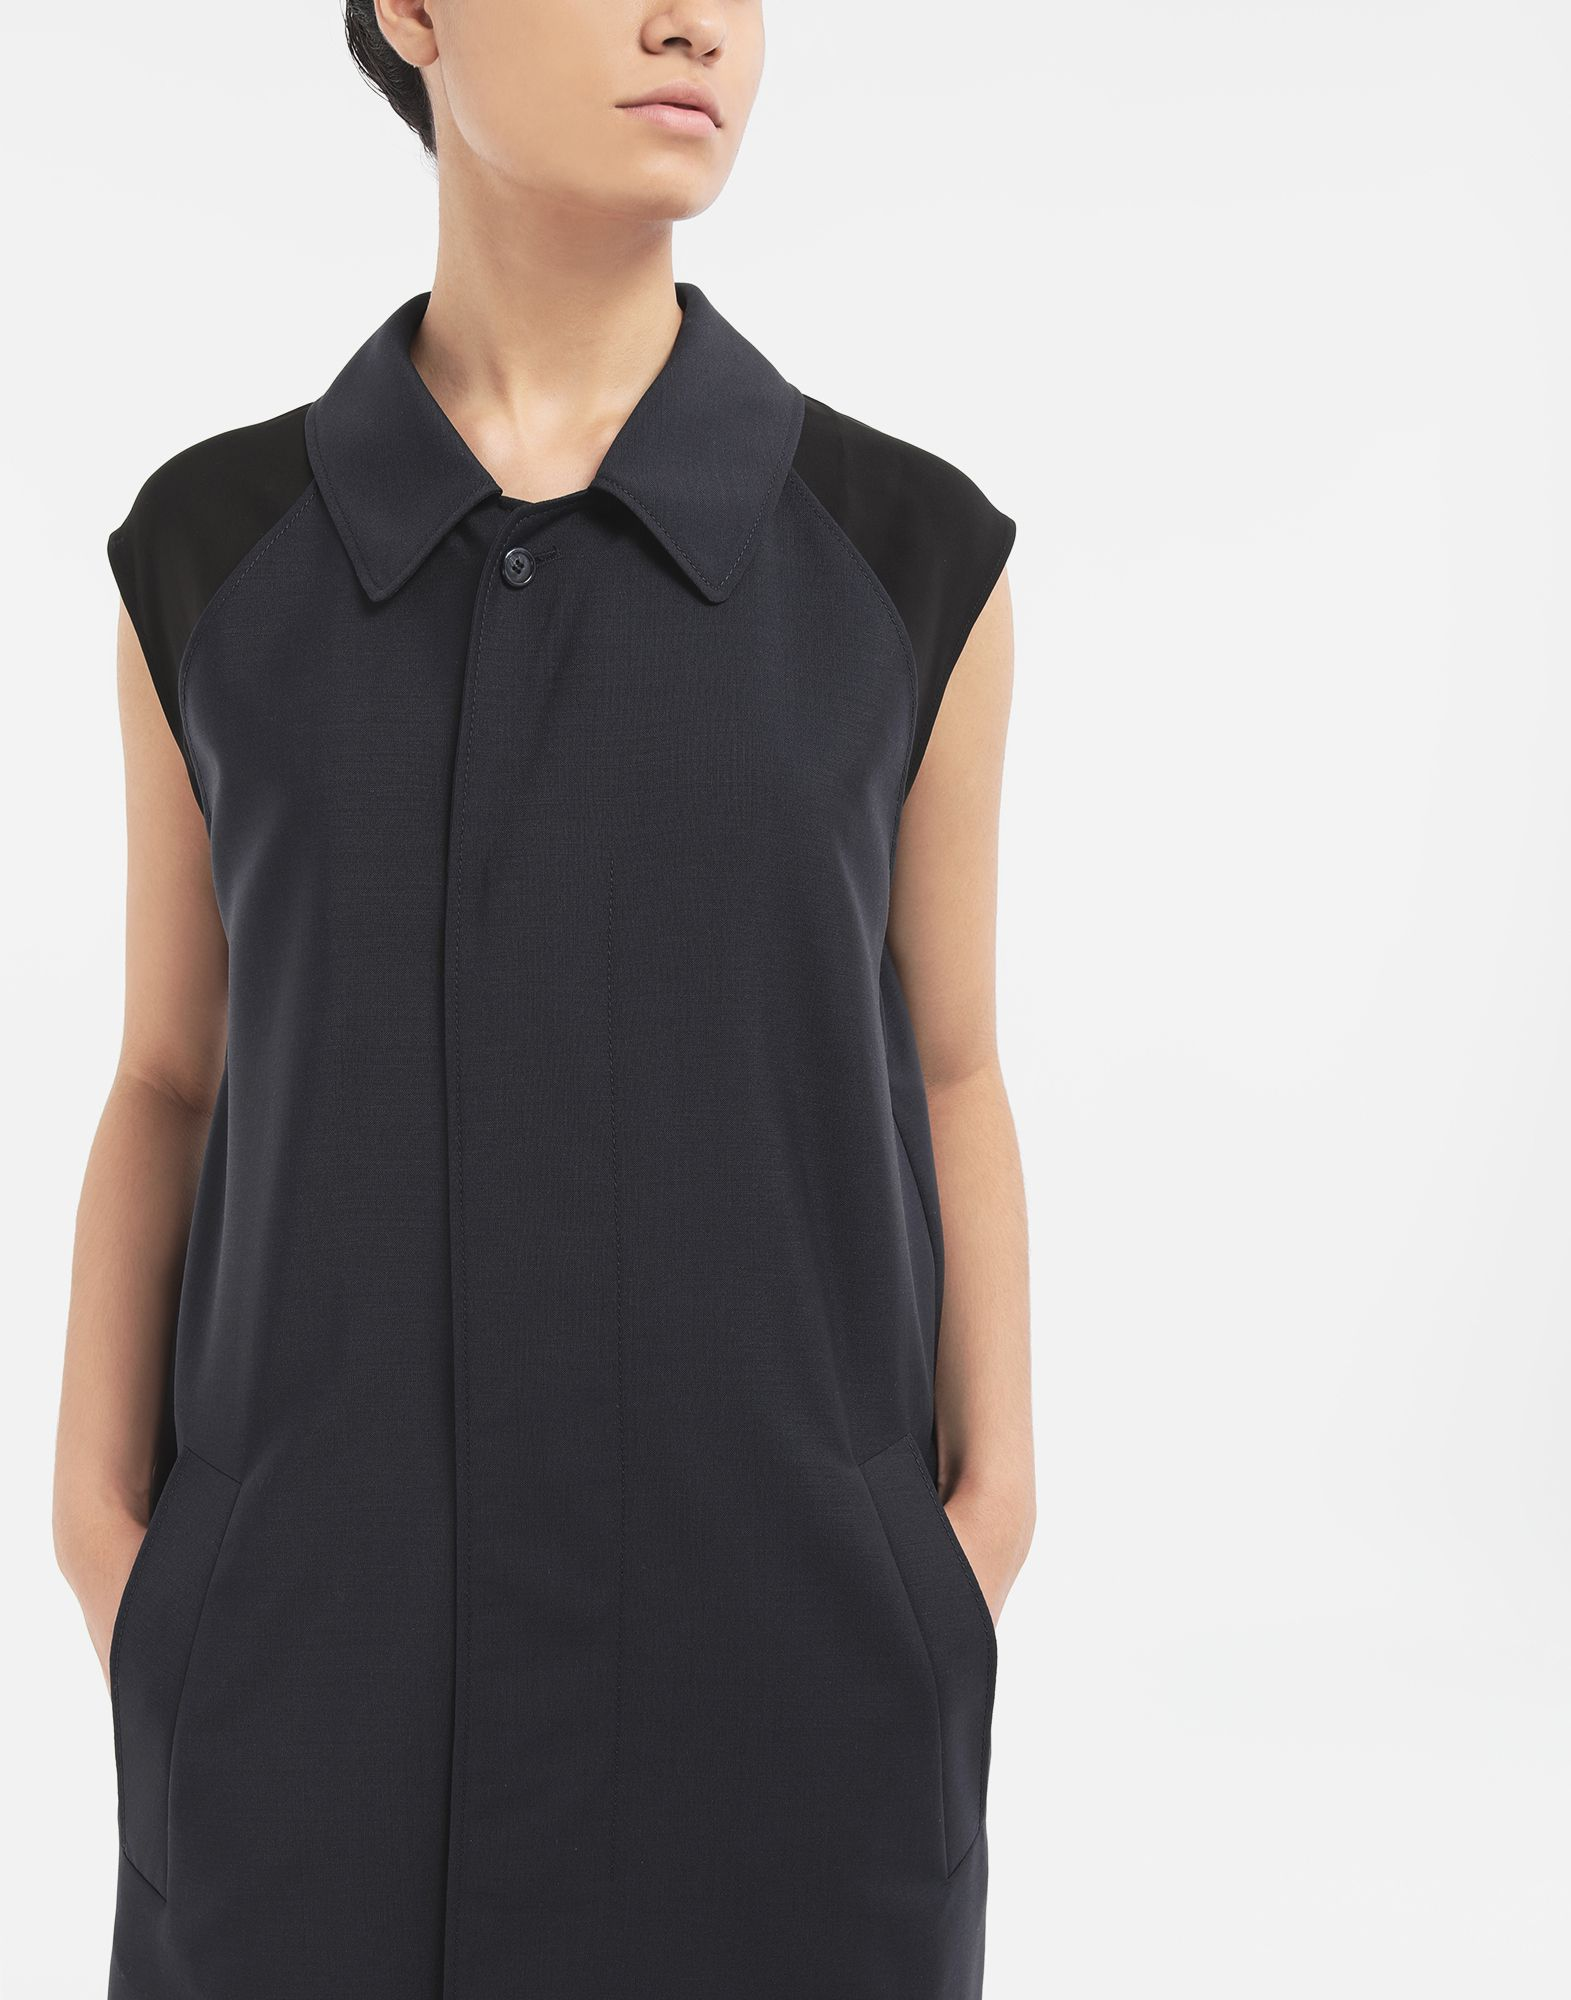 MAISON MARGIELA Spliced midi dress Dress Woman a